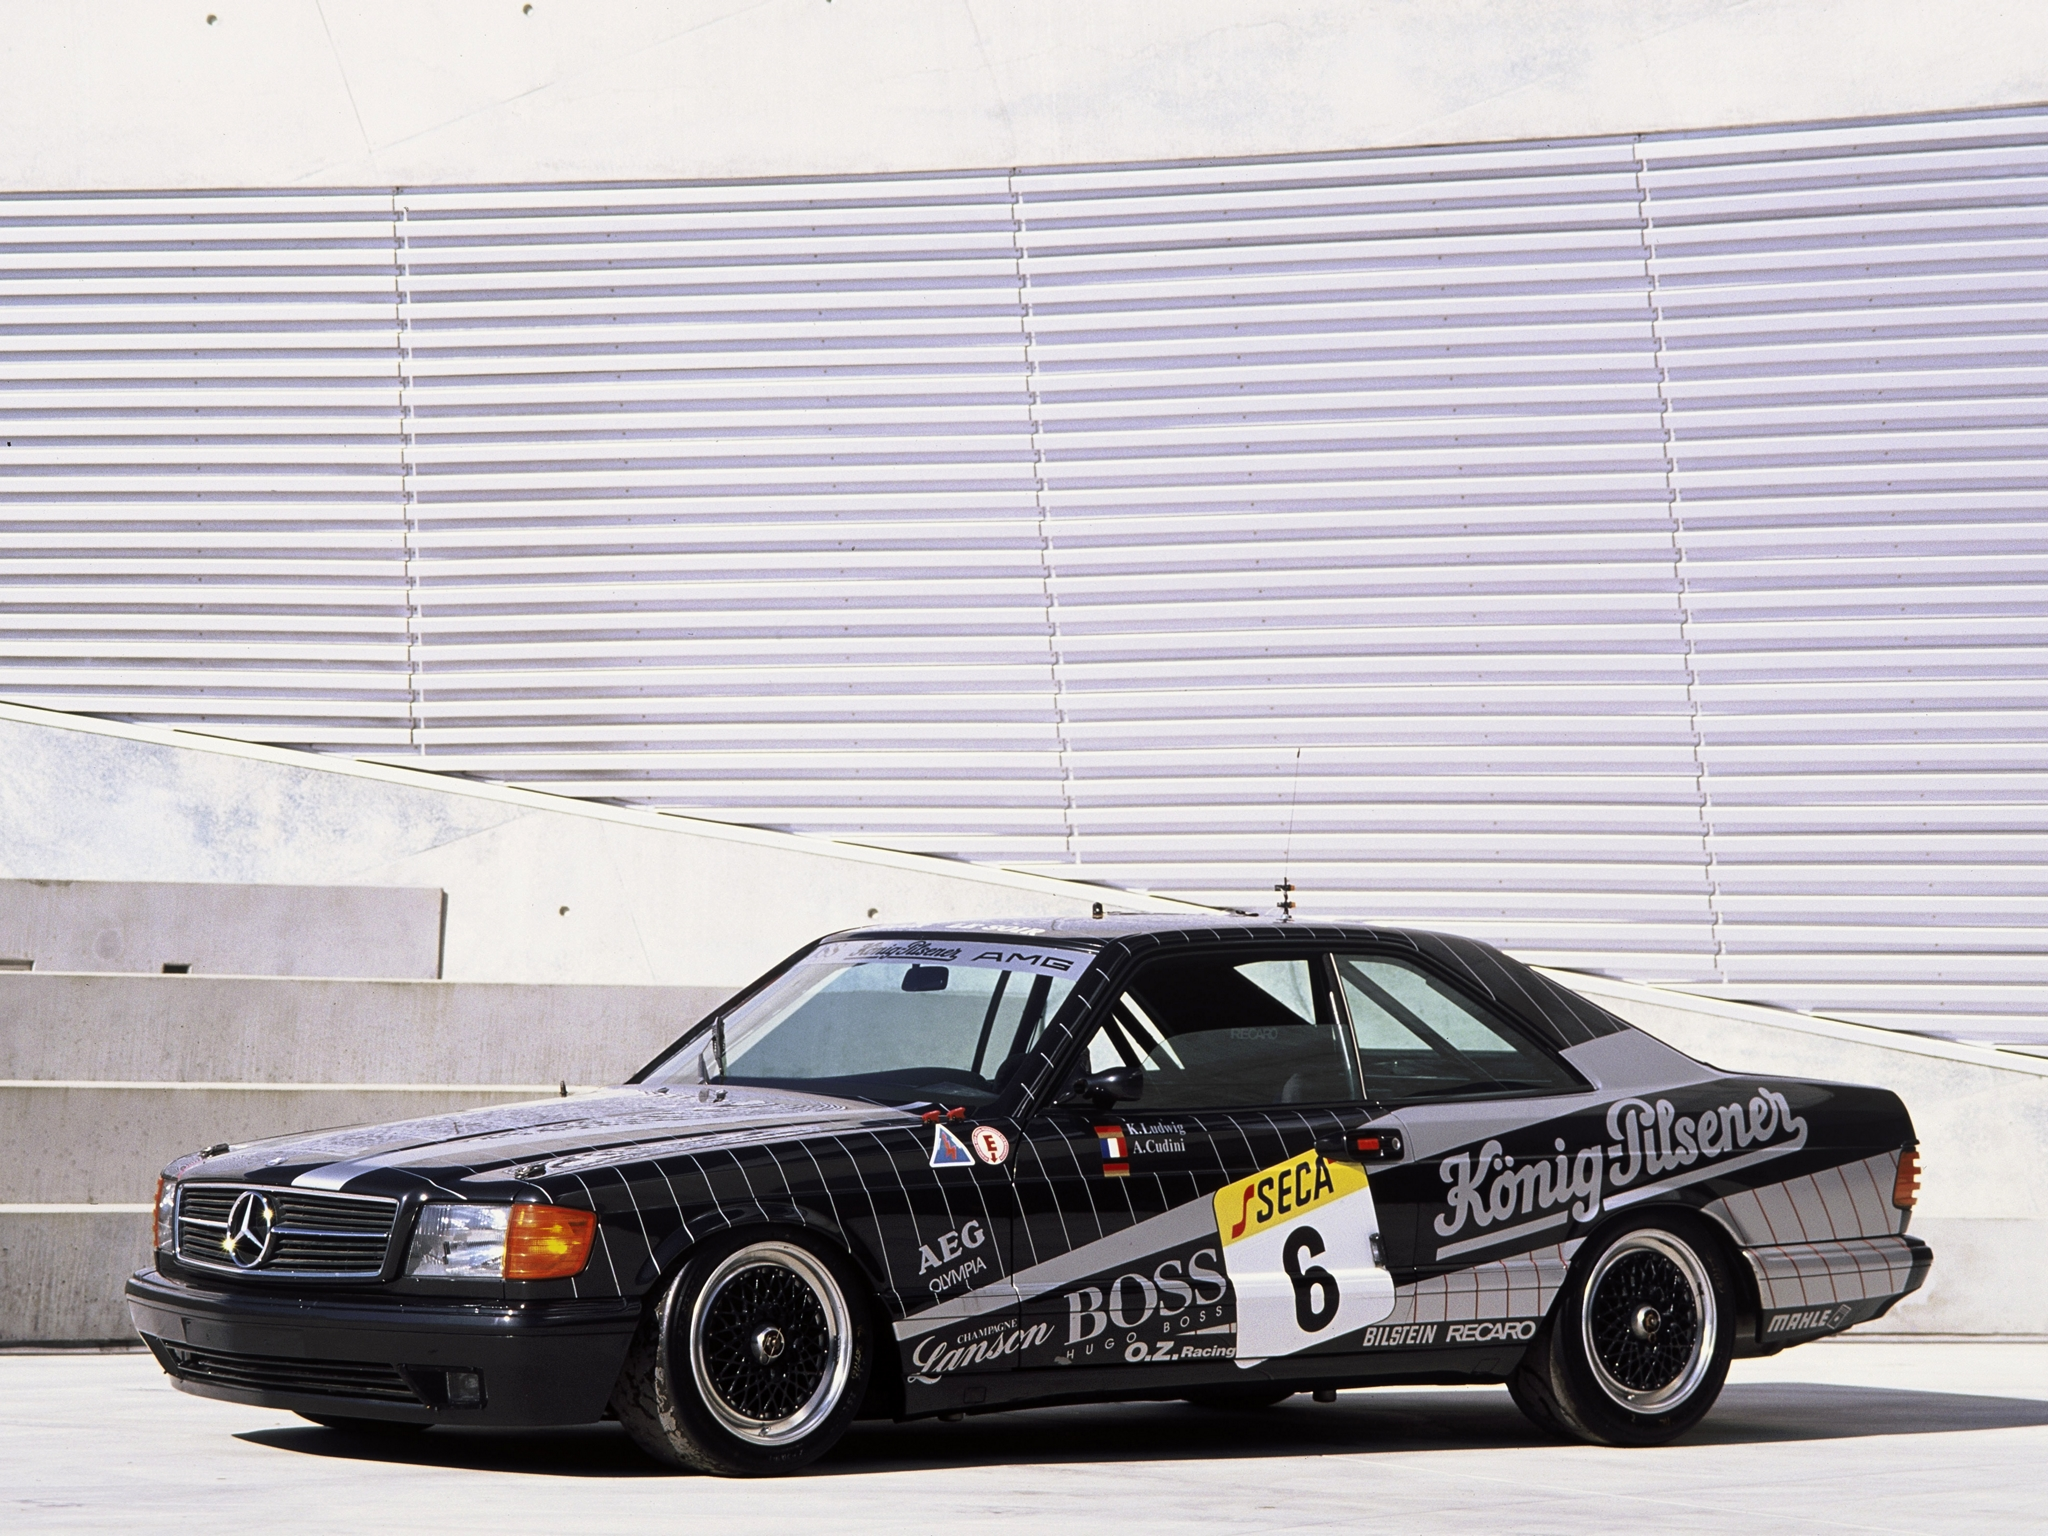 1989 mercedes benz amg 500 sec rc126 race racing wallpaper for Mercedes benz race